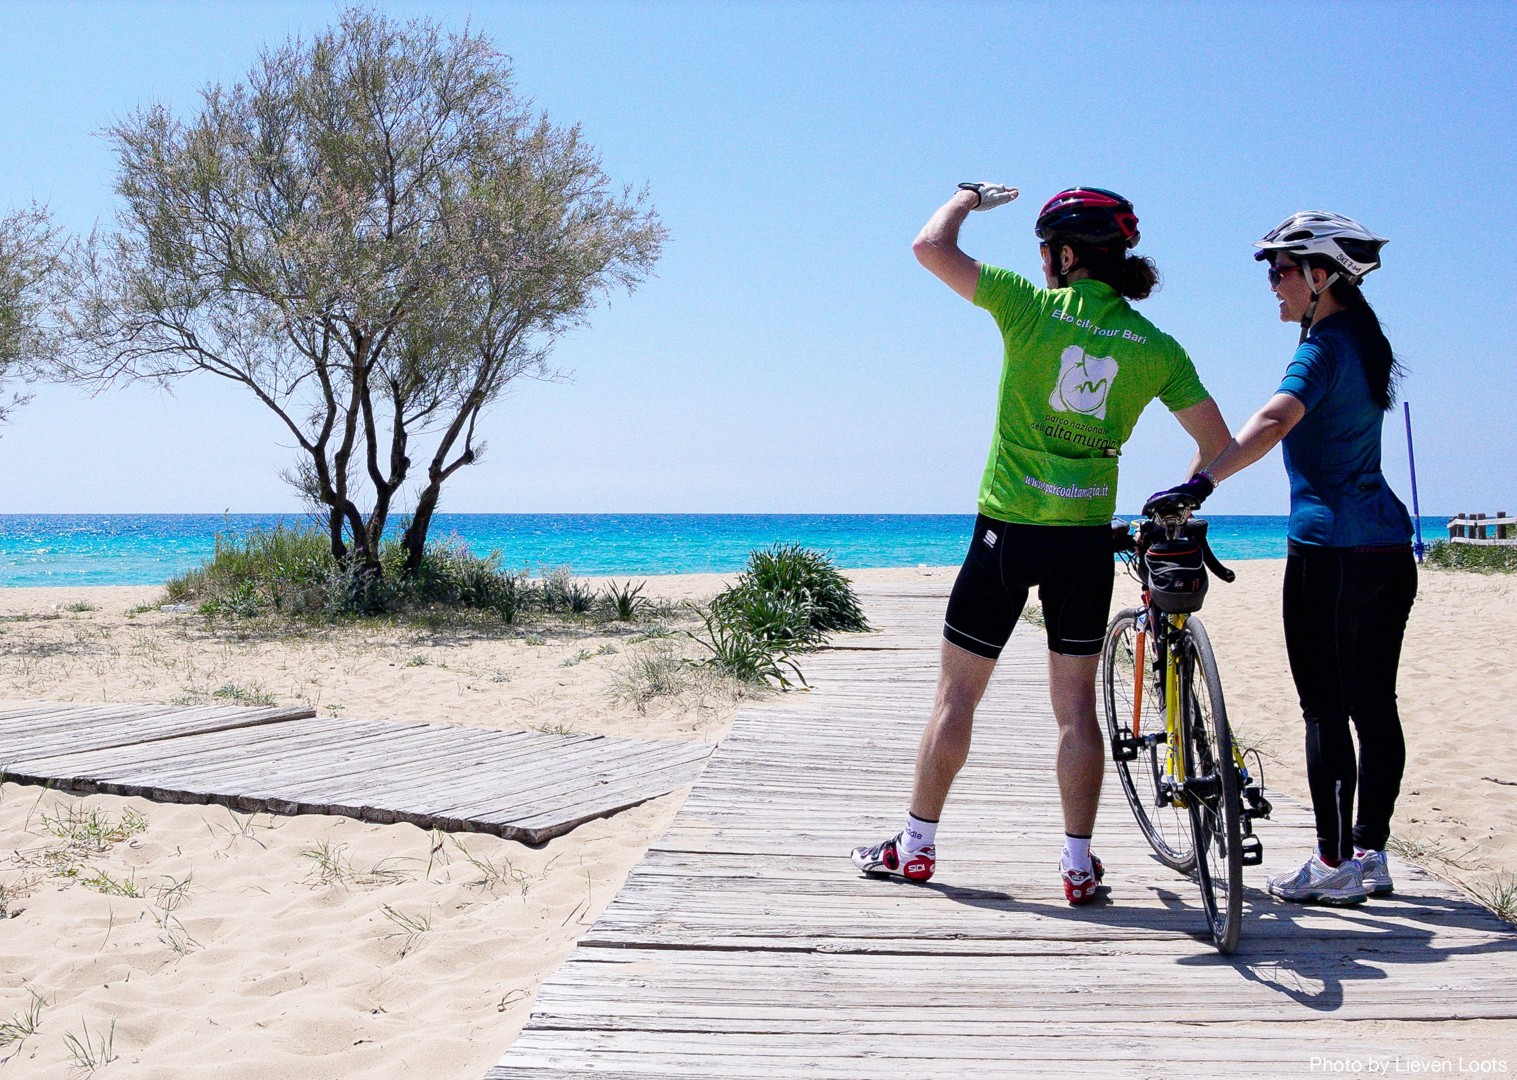 coastal-views-puglia-group-guided-cycling-holiday.jpg - Italy - Puglia - The Beautiful South - Guided Road Cycling Holiday - Road Cycling